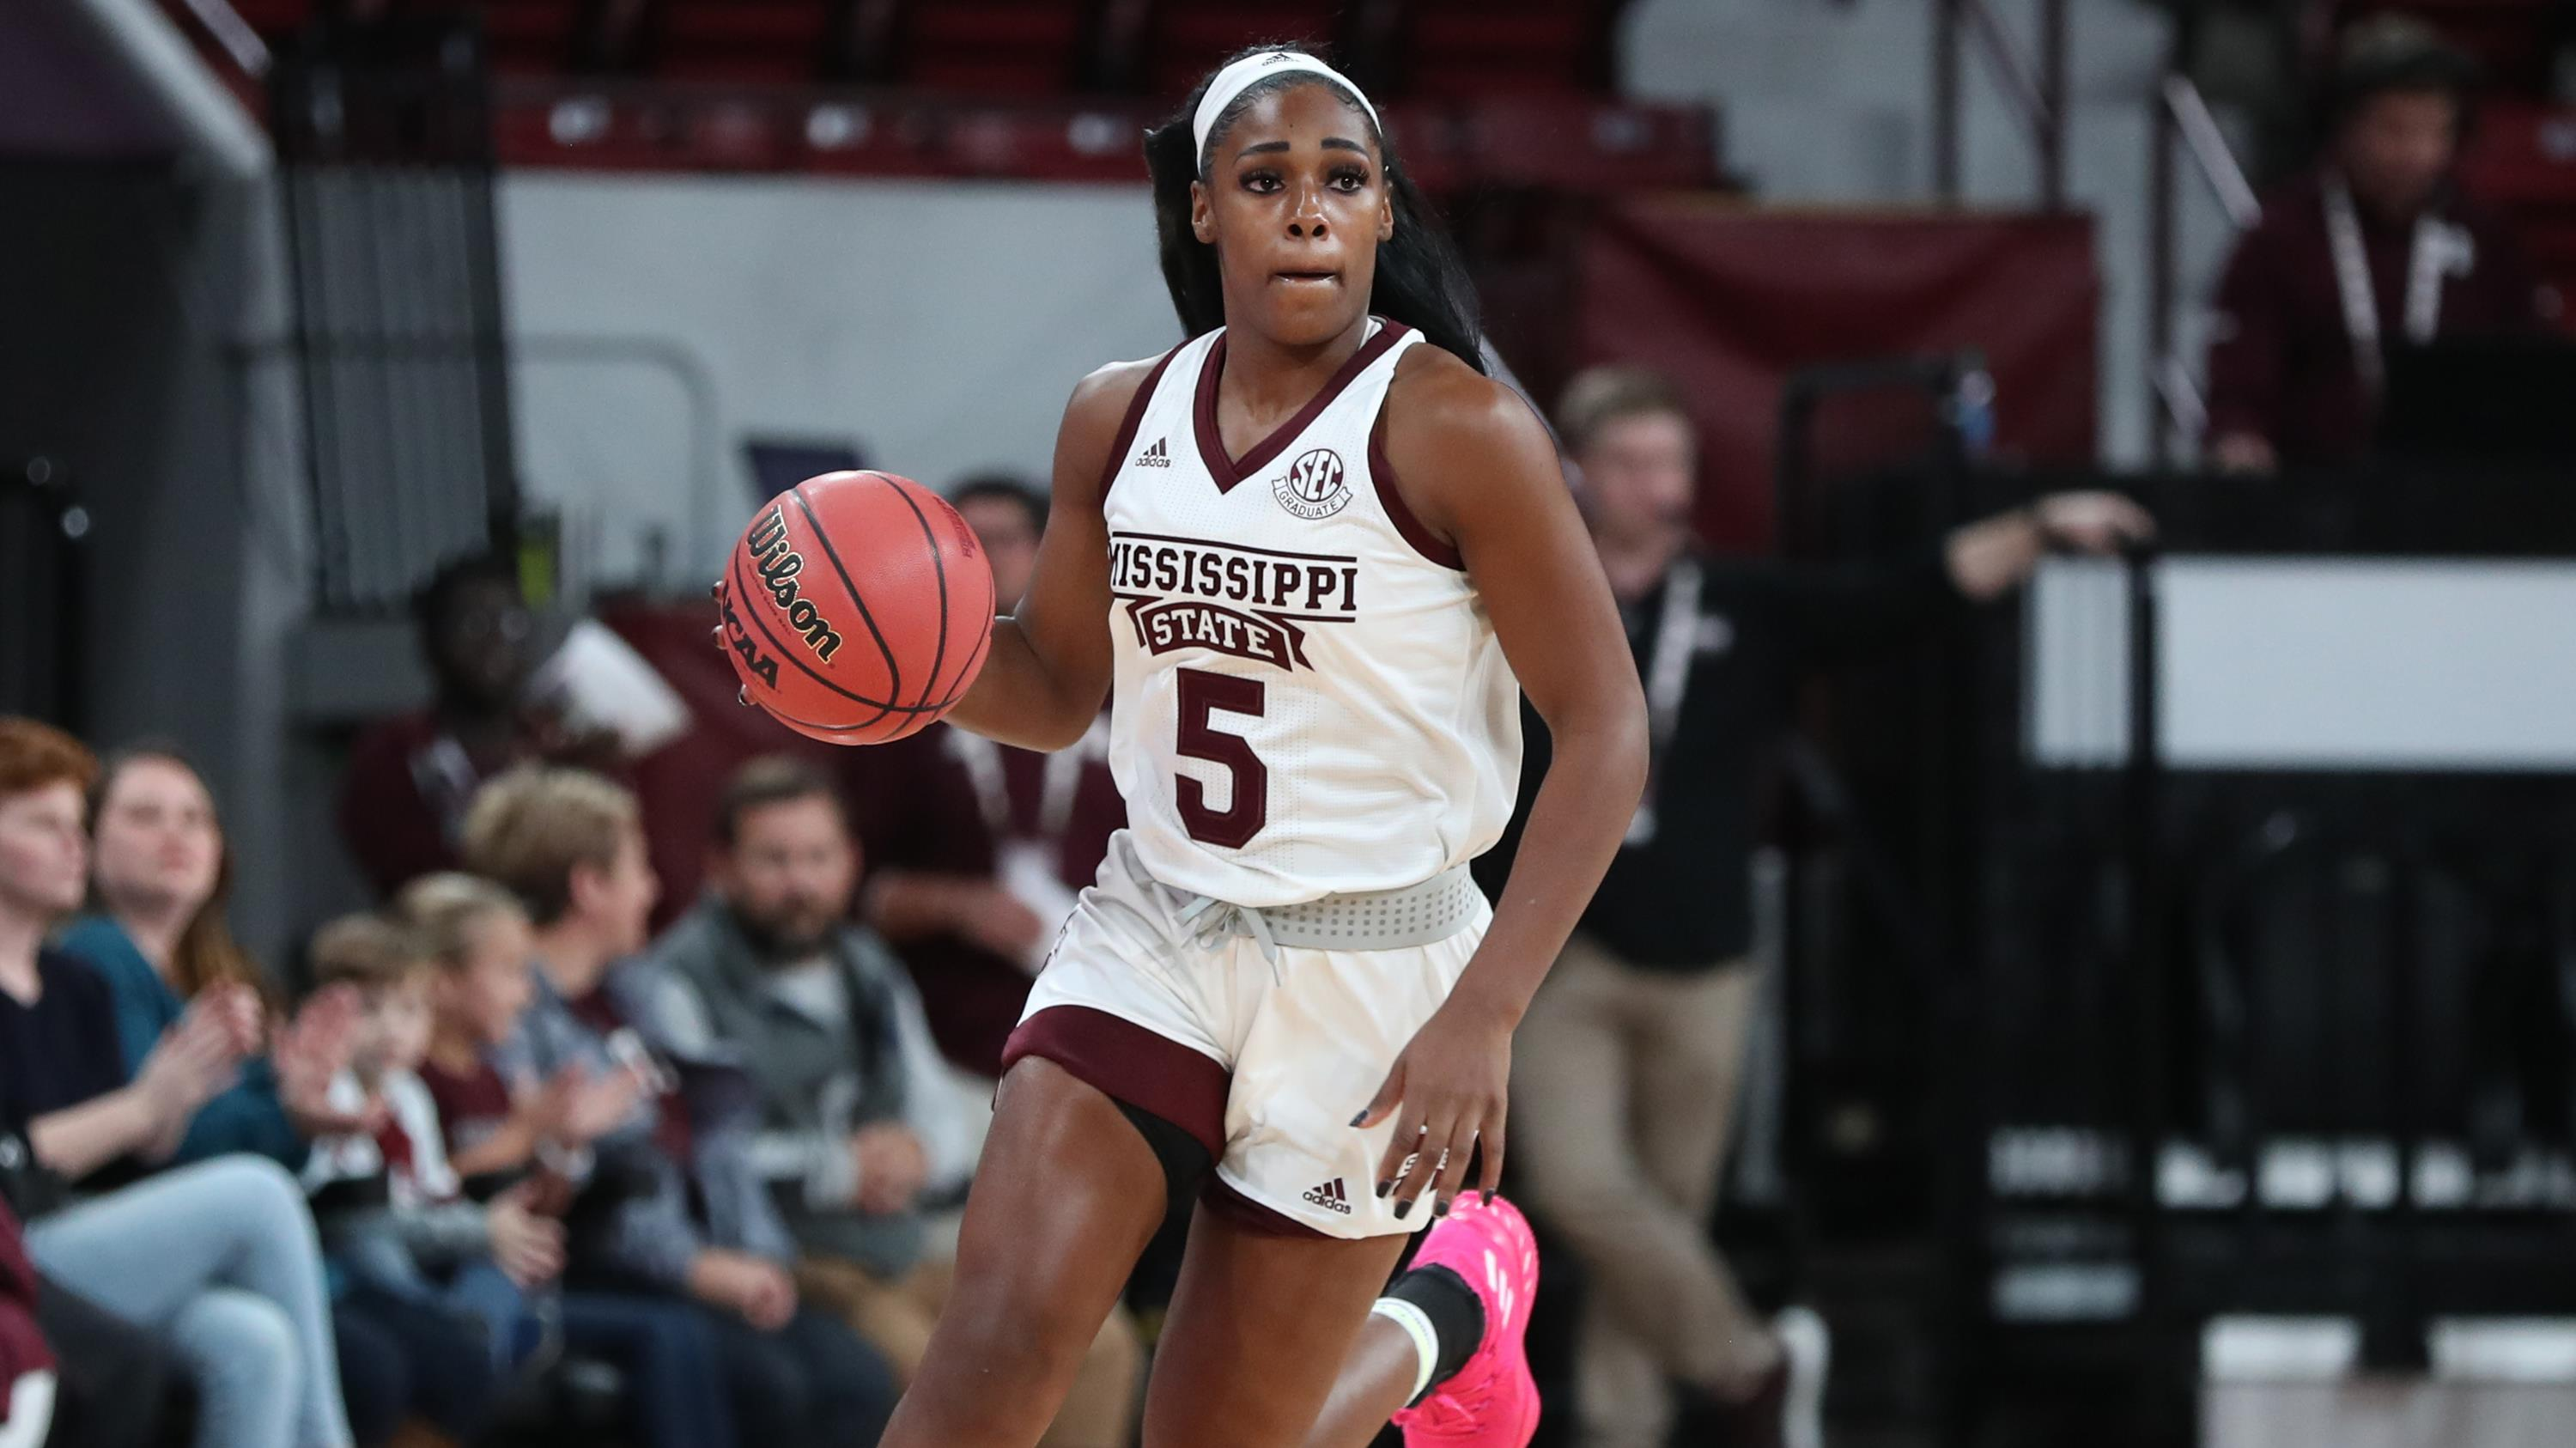 Mississippi State displays depth in 97-56 exhibition win over DII Central Missouri